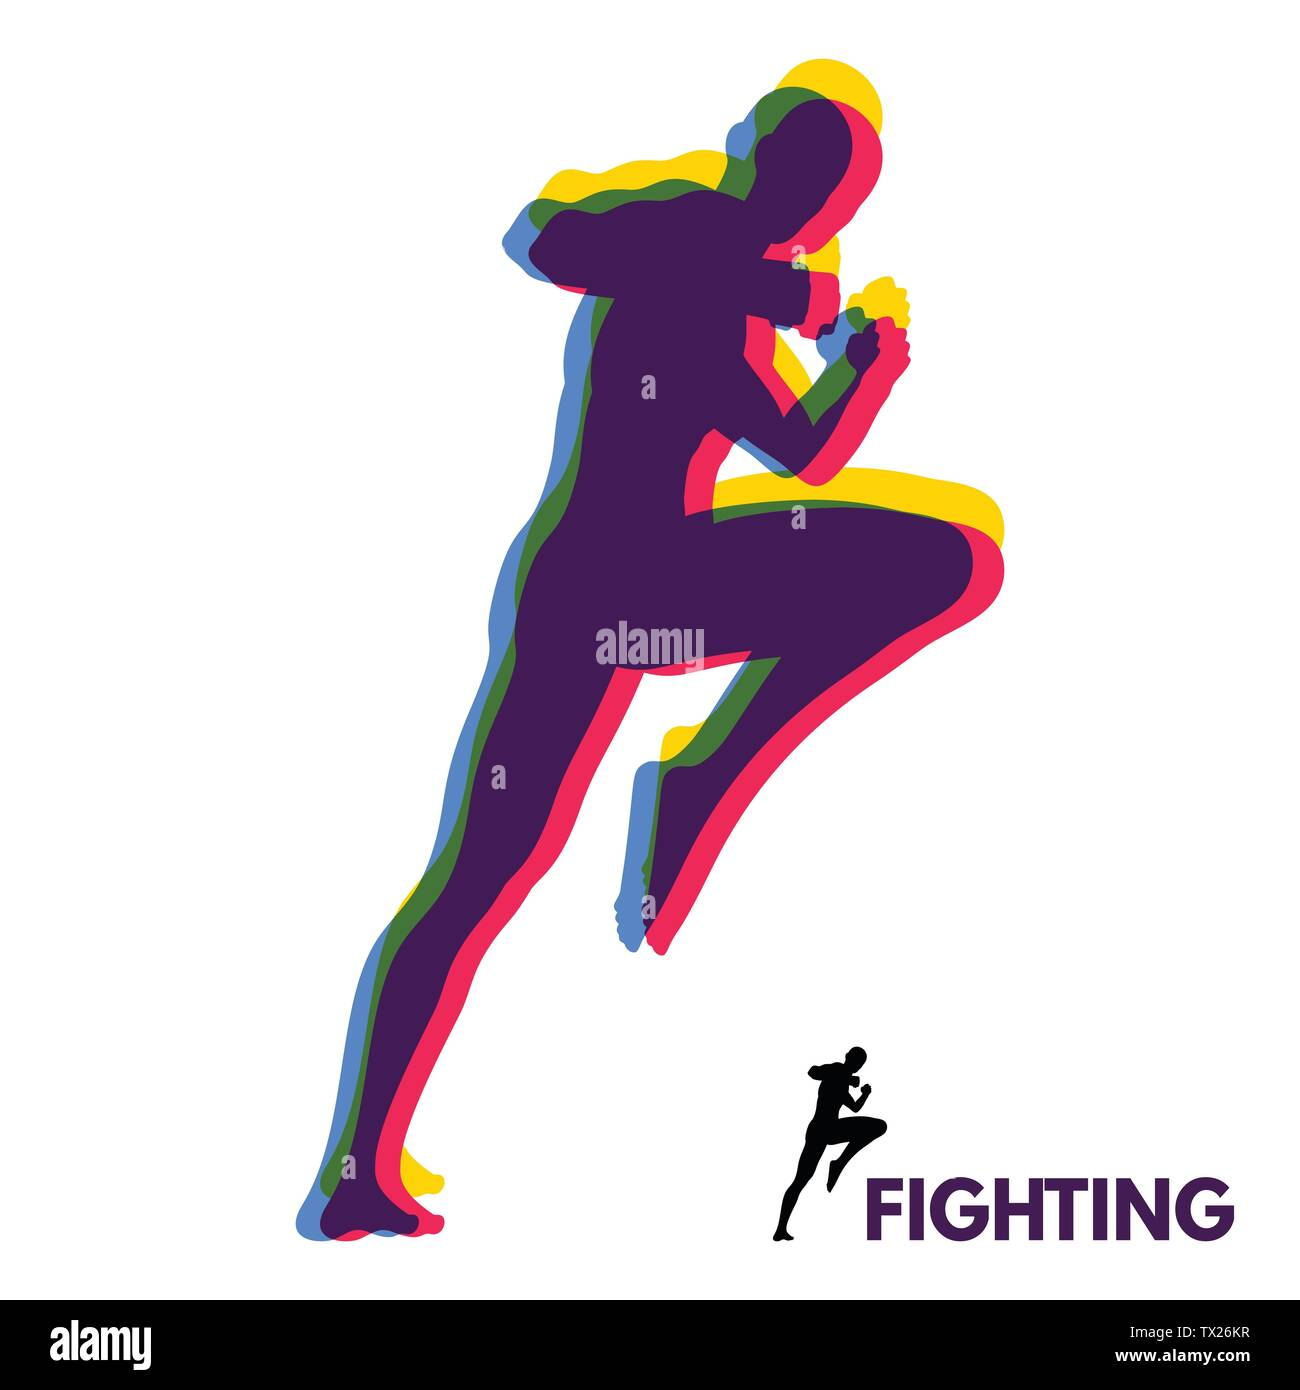 Kickbox fighter preparing to execute a high kick. Silhouette of a fighting man. Design template for Sport. Emblem for training. Vector Illustration. - Stock Image